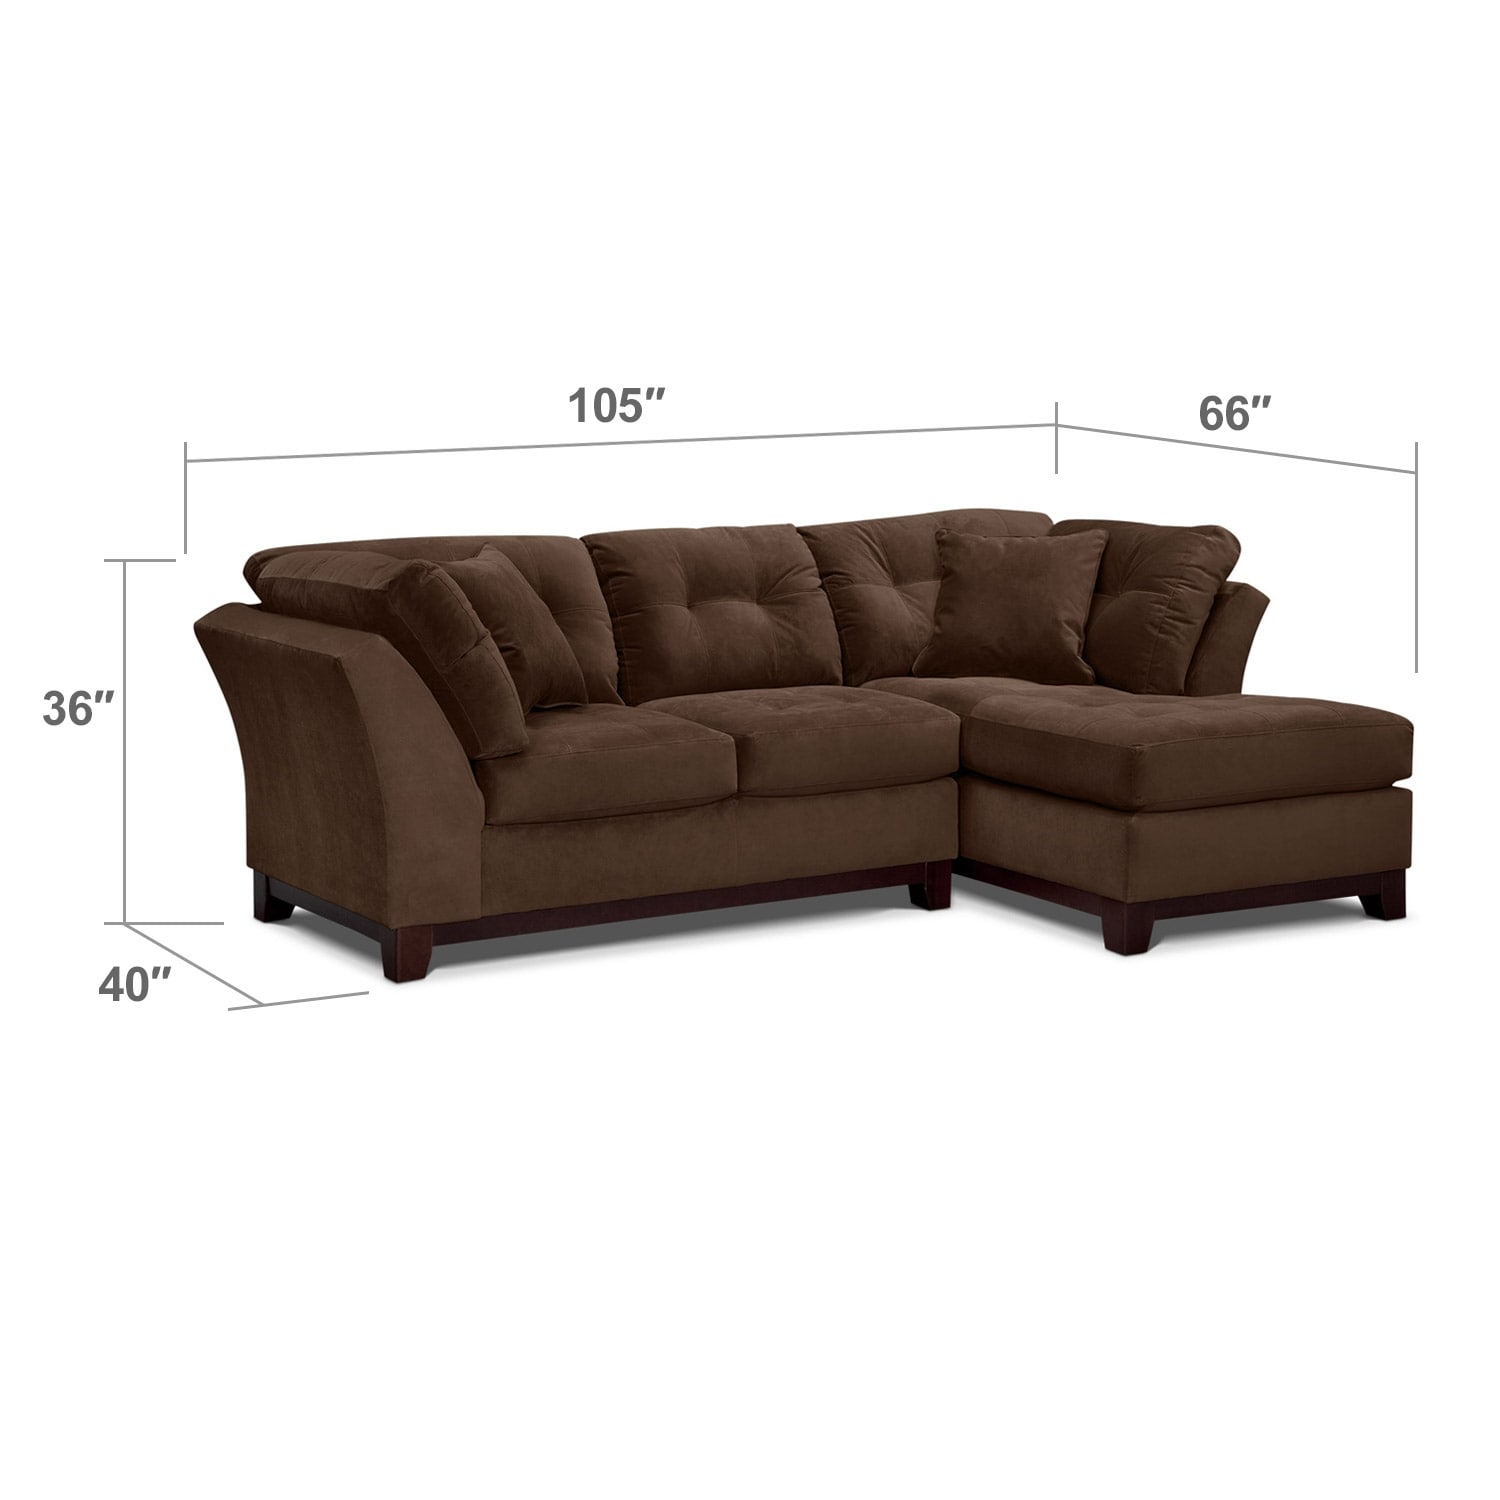 Living Room Furniture - Solace Chocolate II 2 Pc. Sectional (Alternate Reverse)